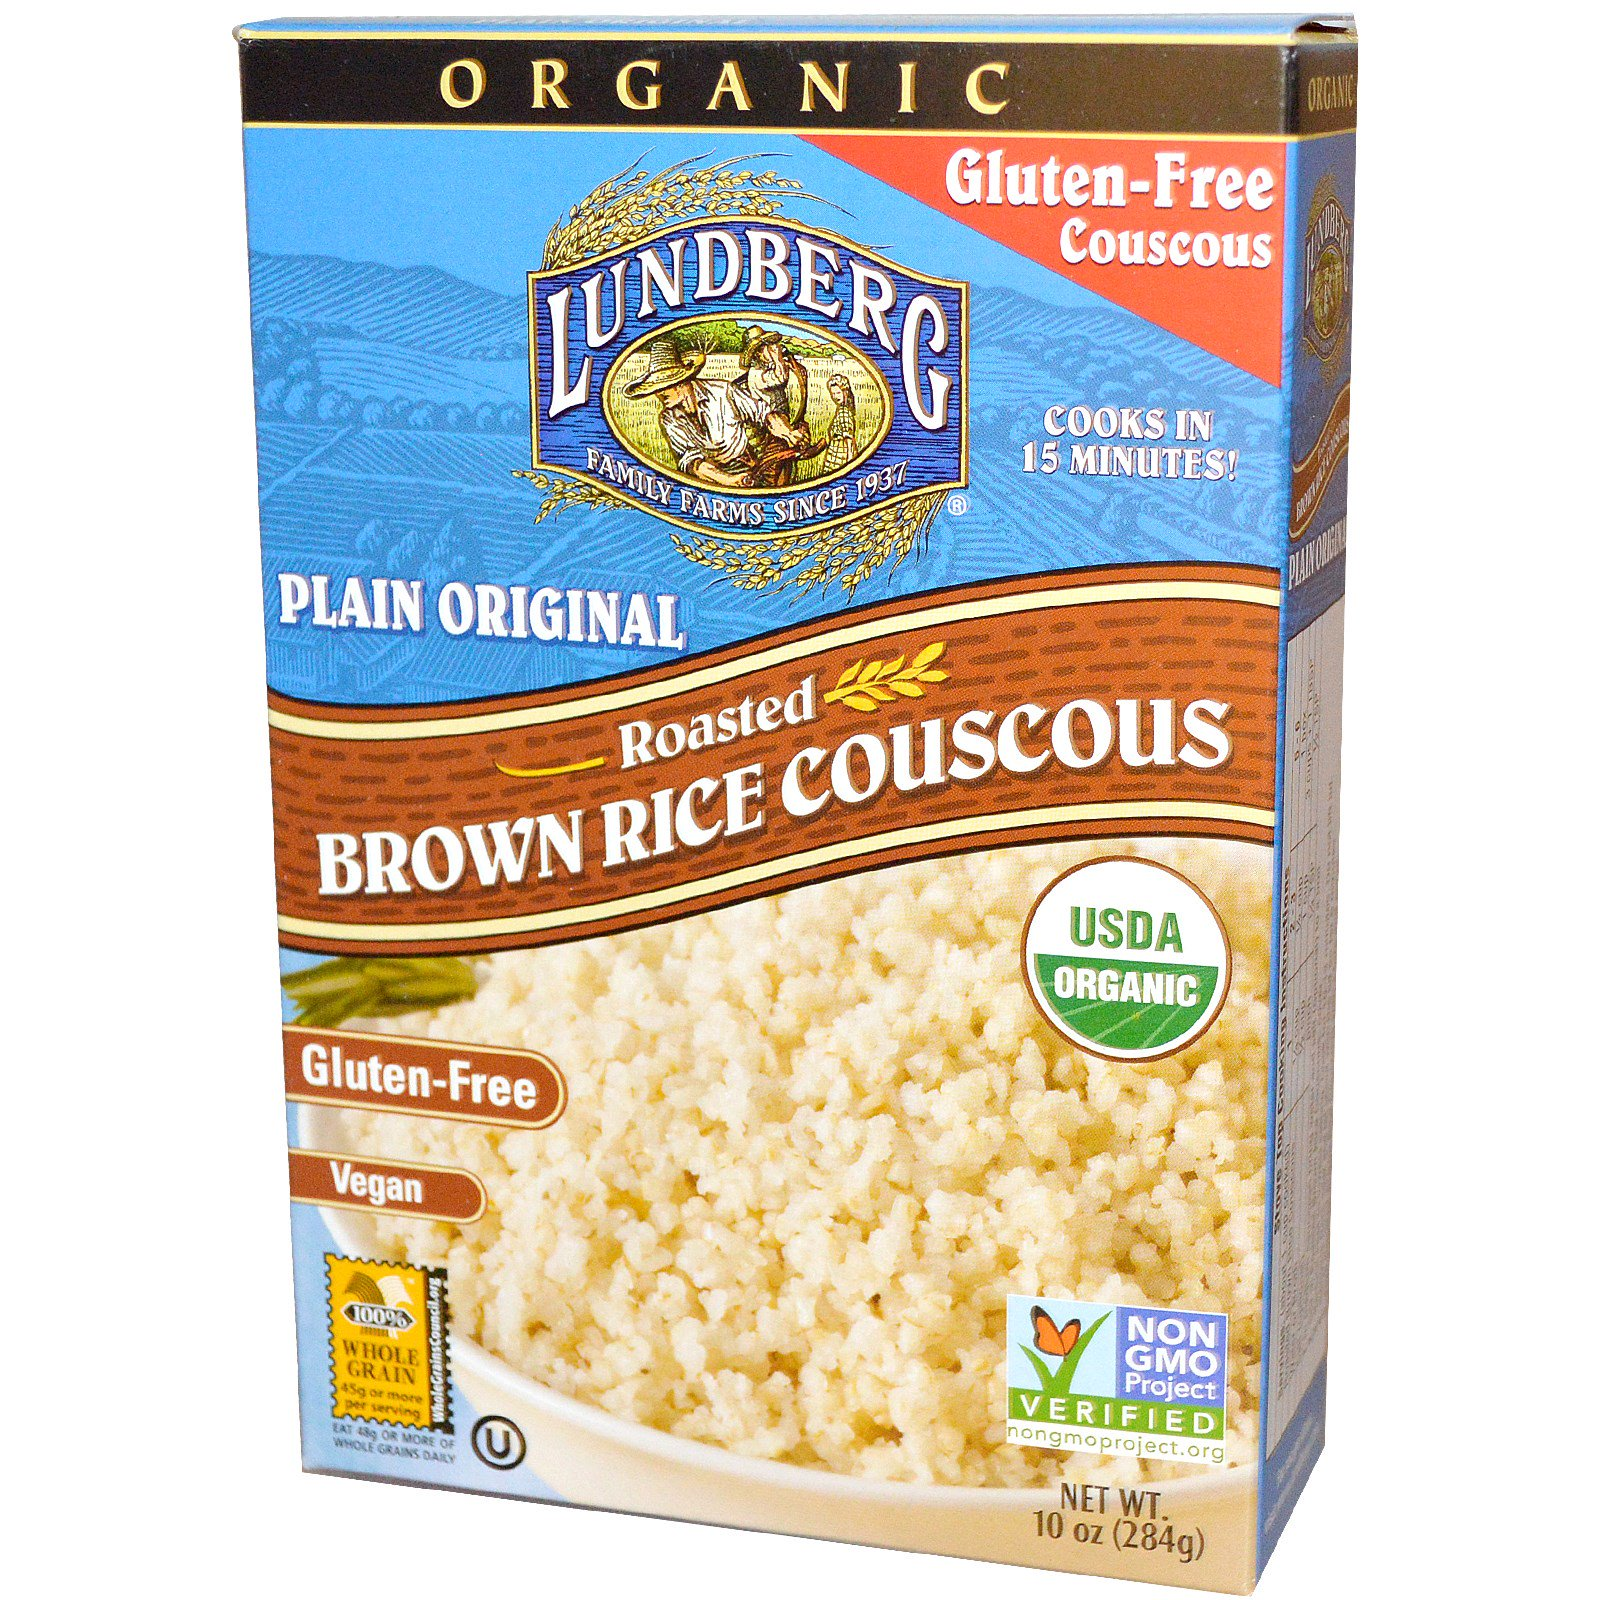 Couscous Plain Lundberg organic roasted brown rice couscous plain original 10 lundberg organic roasted brown rice couscous plain original 10 oz 284 sisterspd